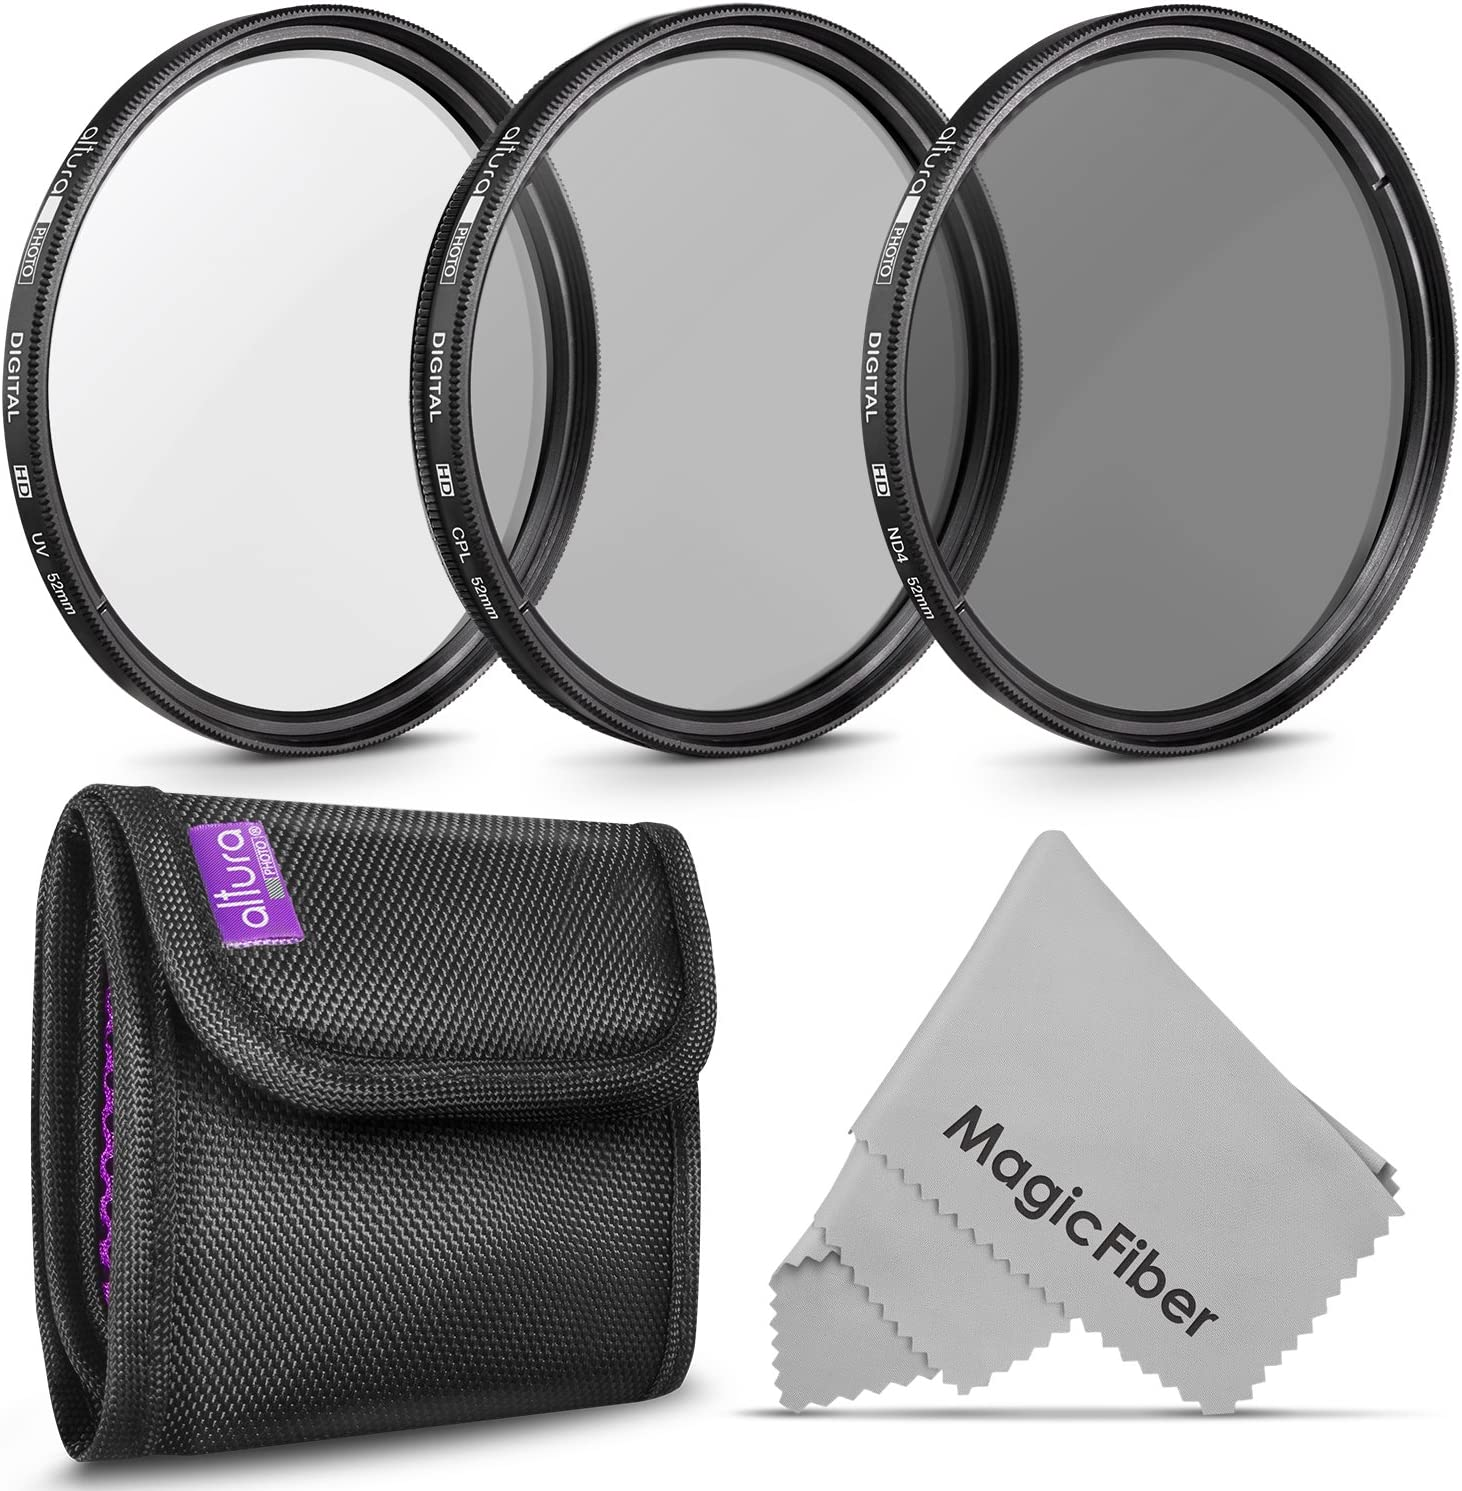 for NIkon Zoom Normal-Telephoto 55-200mm f//4-5.6G ED AF-S DX Microfiber Cleaning Cloth CPL 52mm Circular Polarizer Multicoated Glass Filter